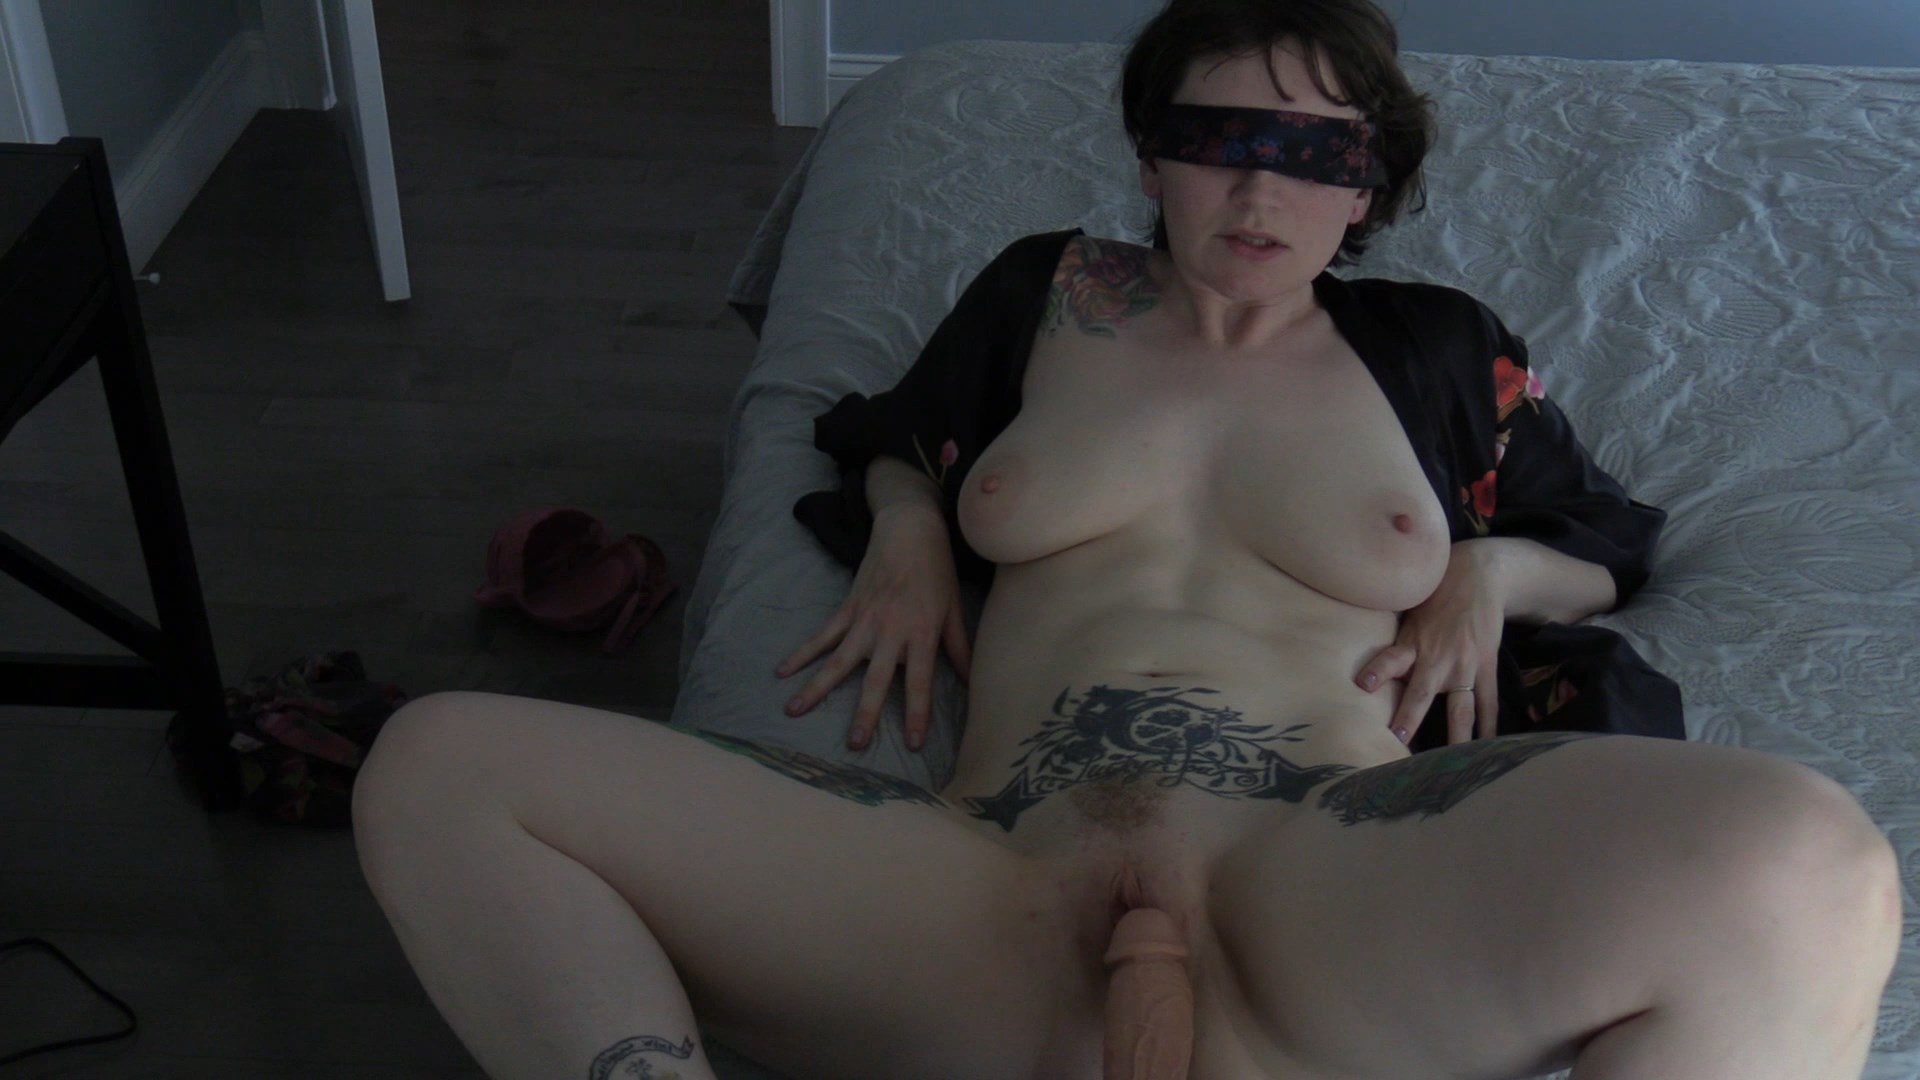 Bettie Bondage - Fucking Your Blindfolded Mom